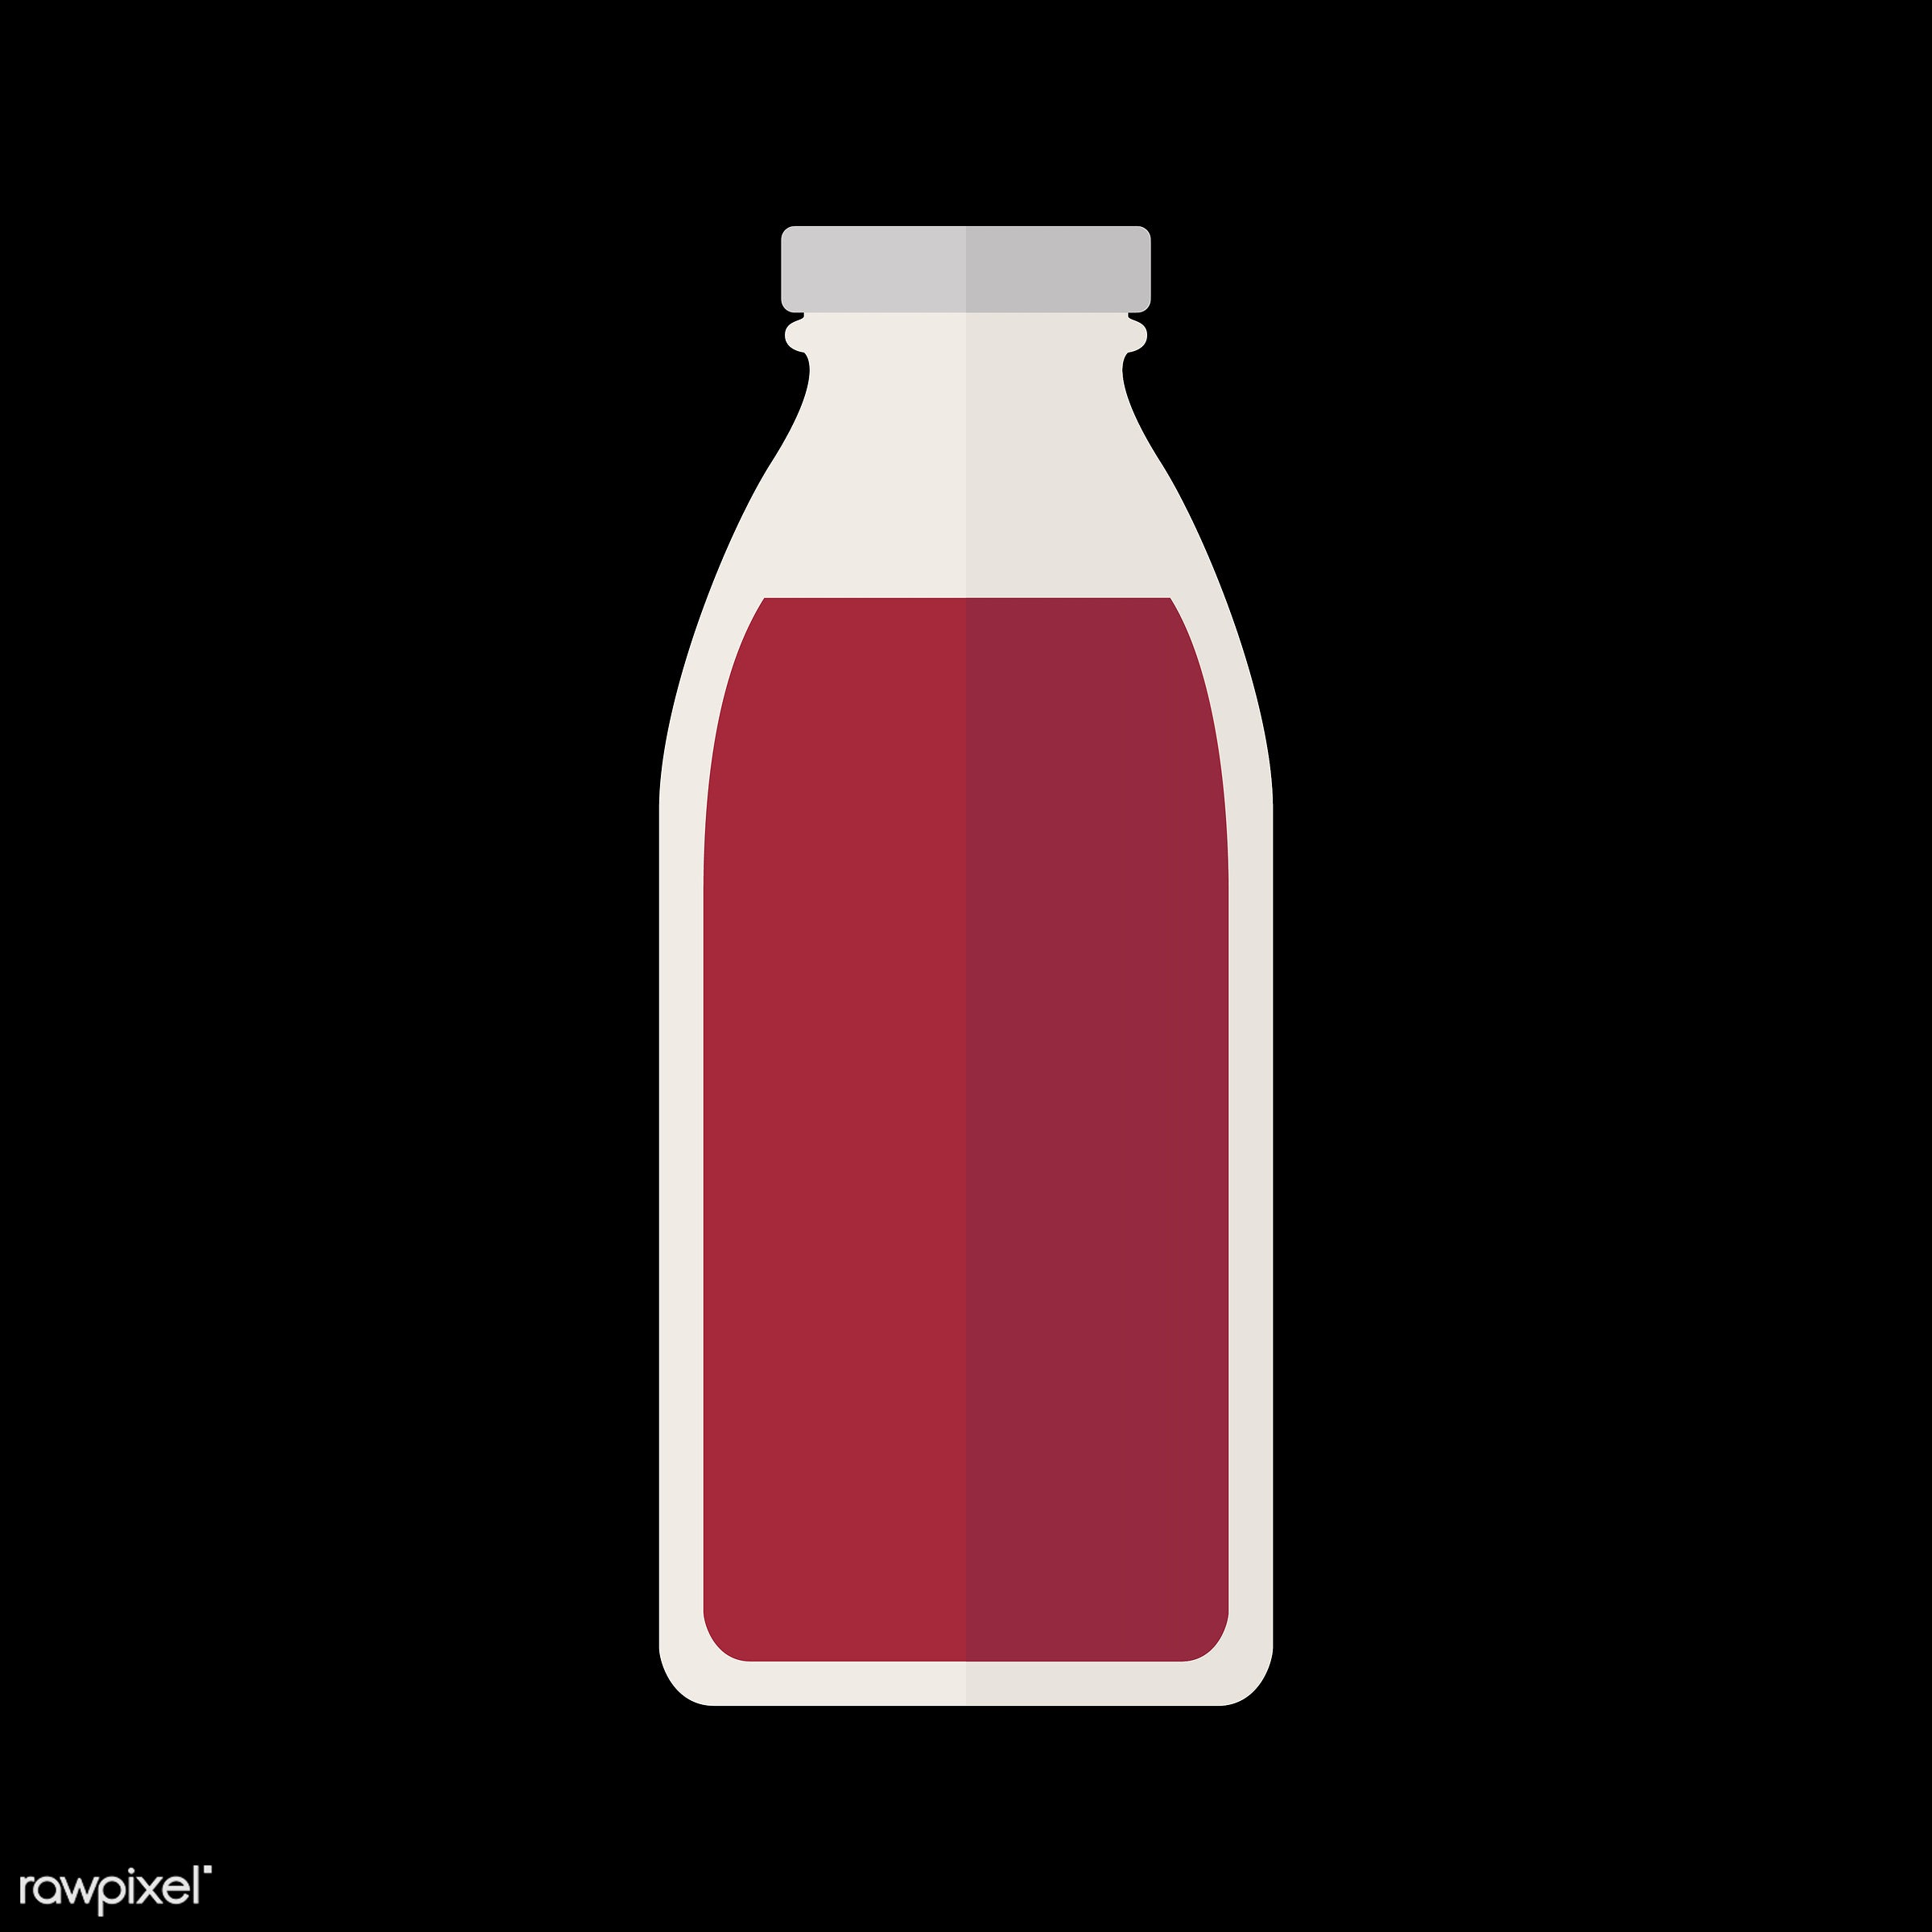 vector, graphic, illustration, icon, symbol, colorful, cute, drink, beverage, water, bottle, red, glass bottle